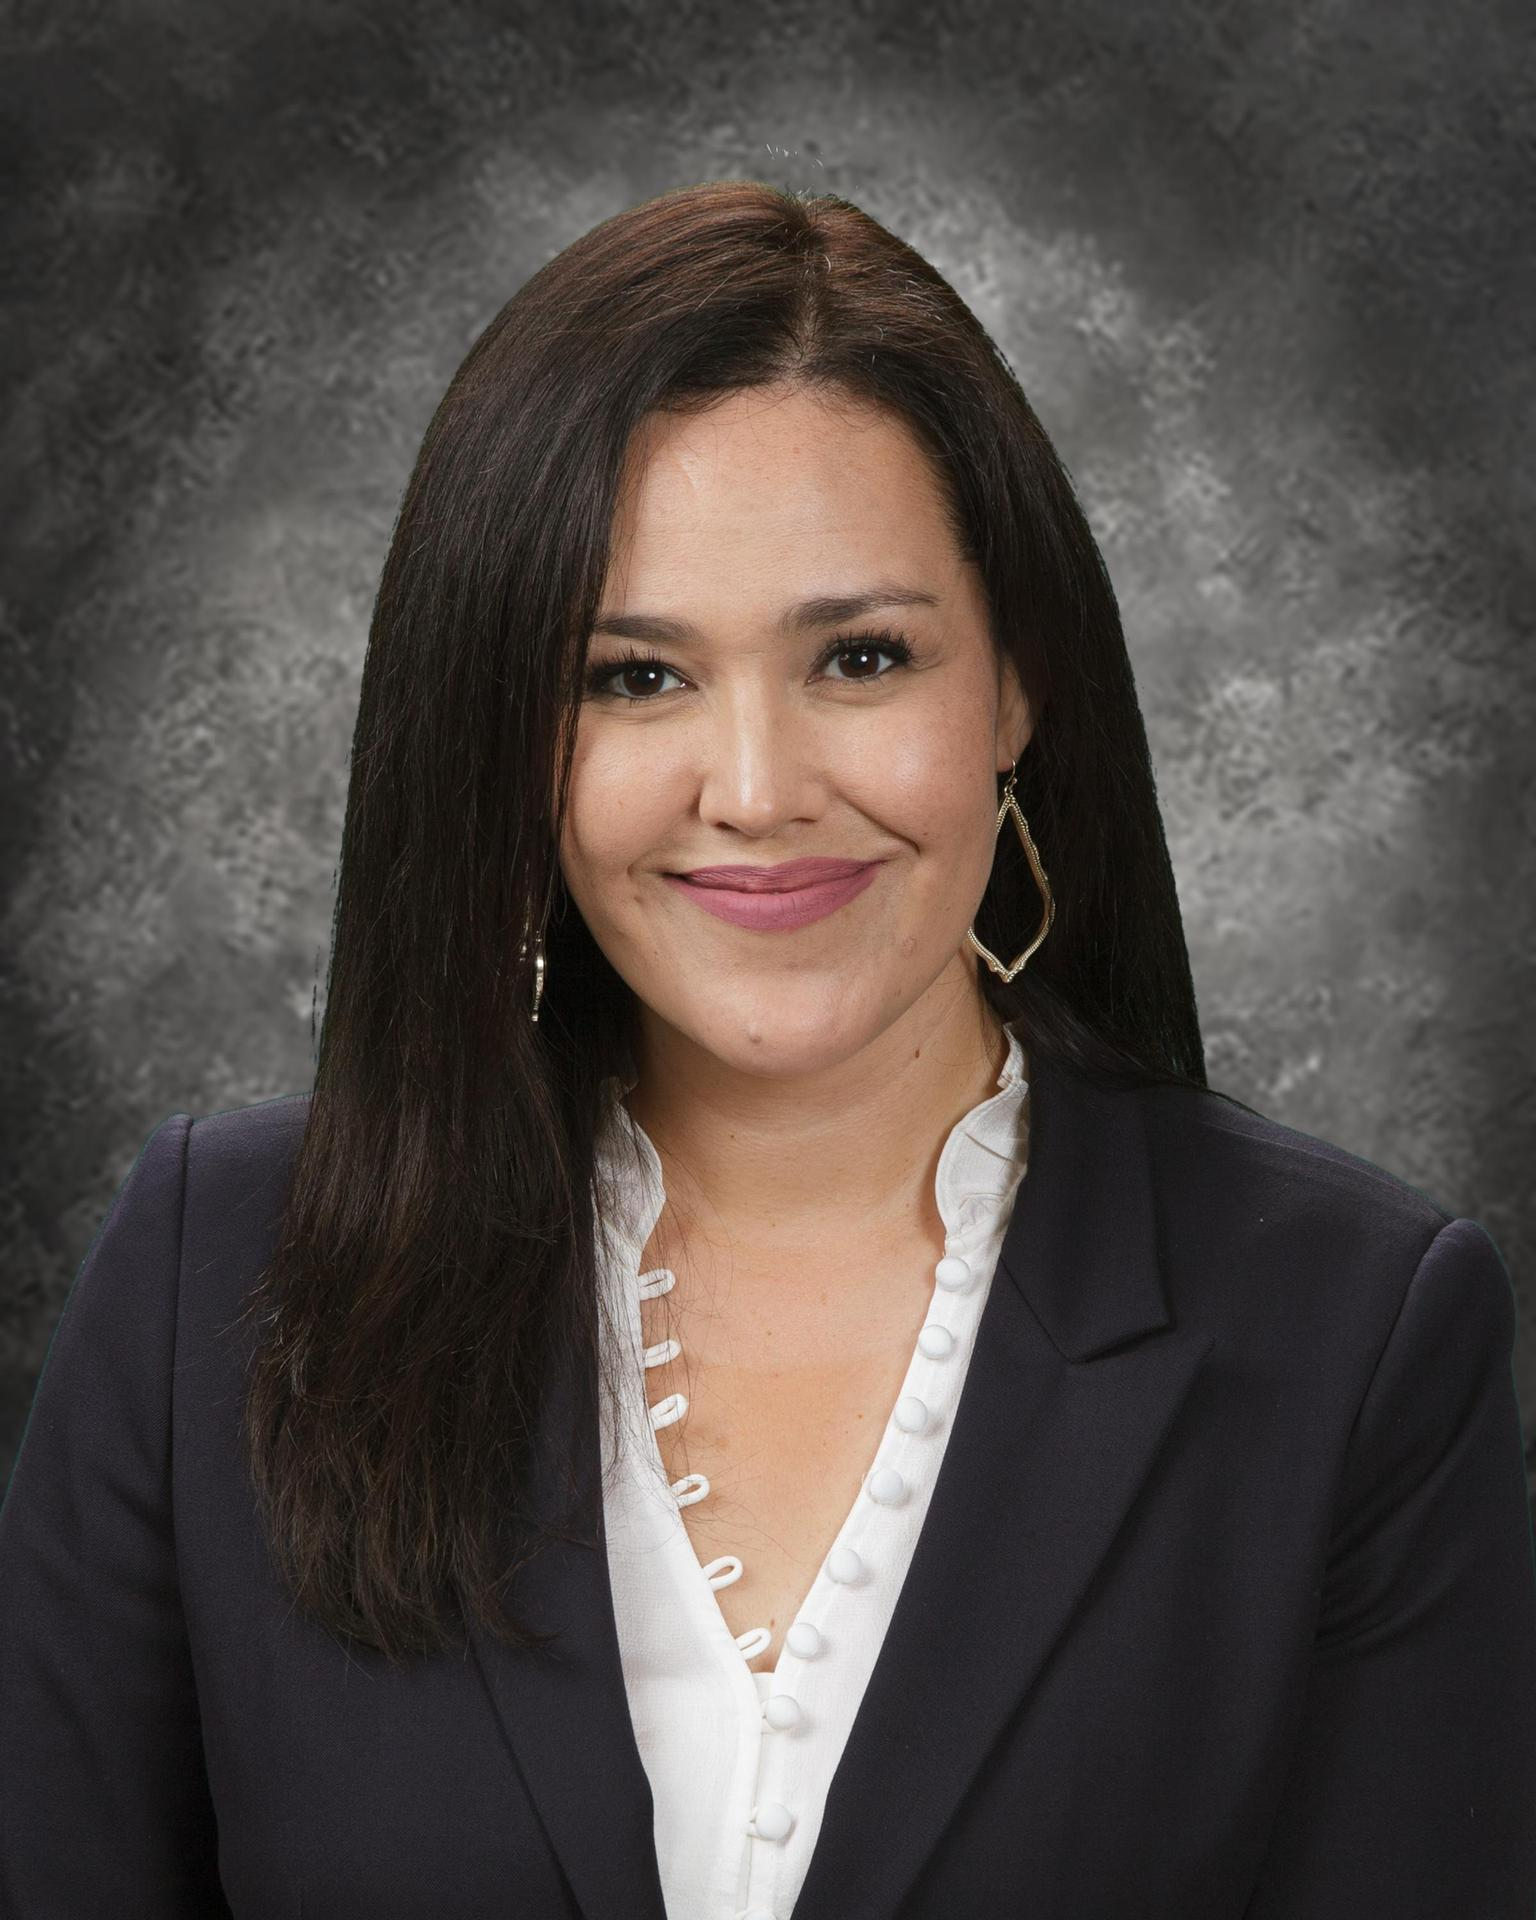 Thelma Reyna Instructional Officer